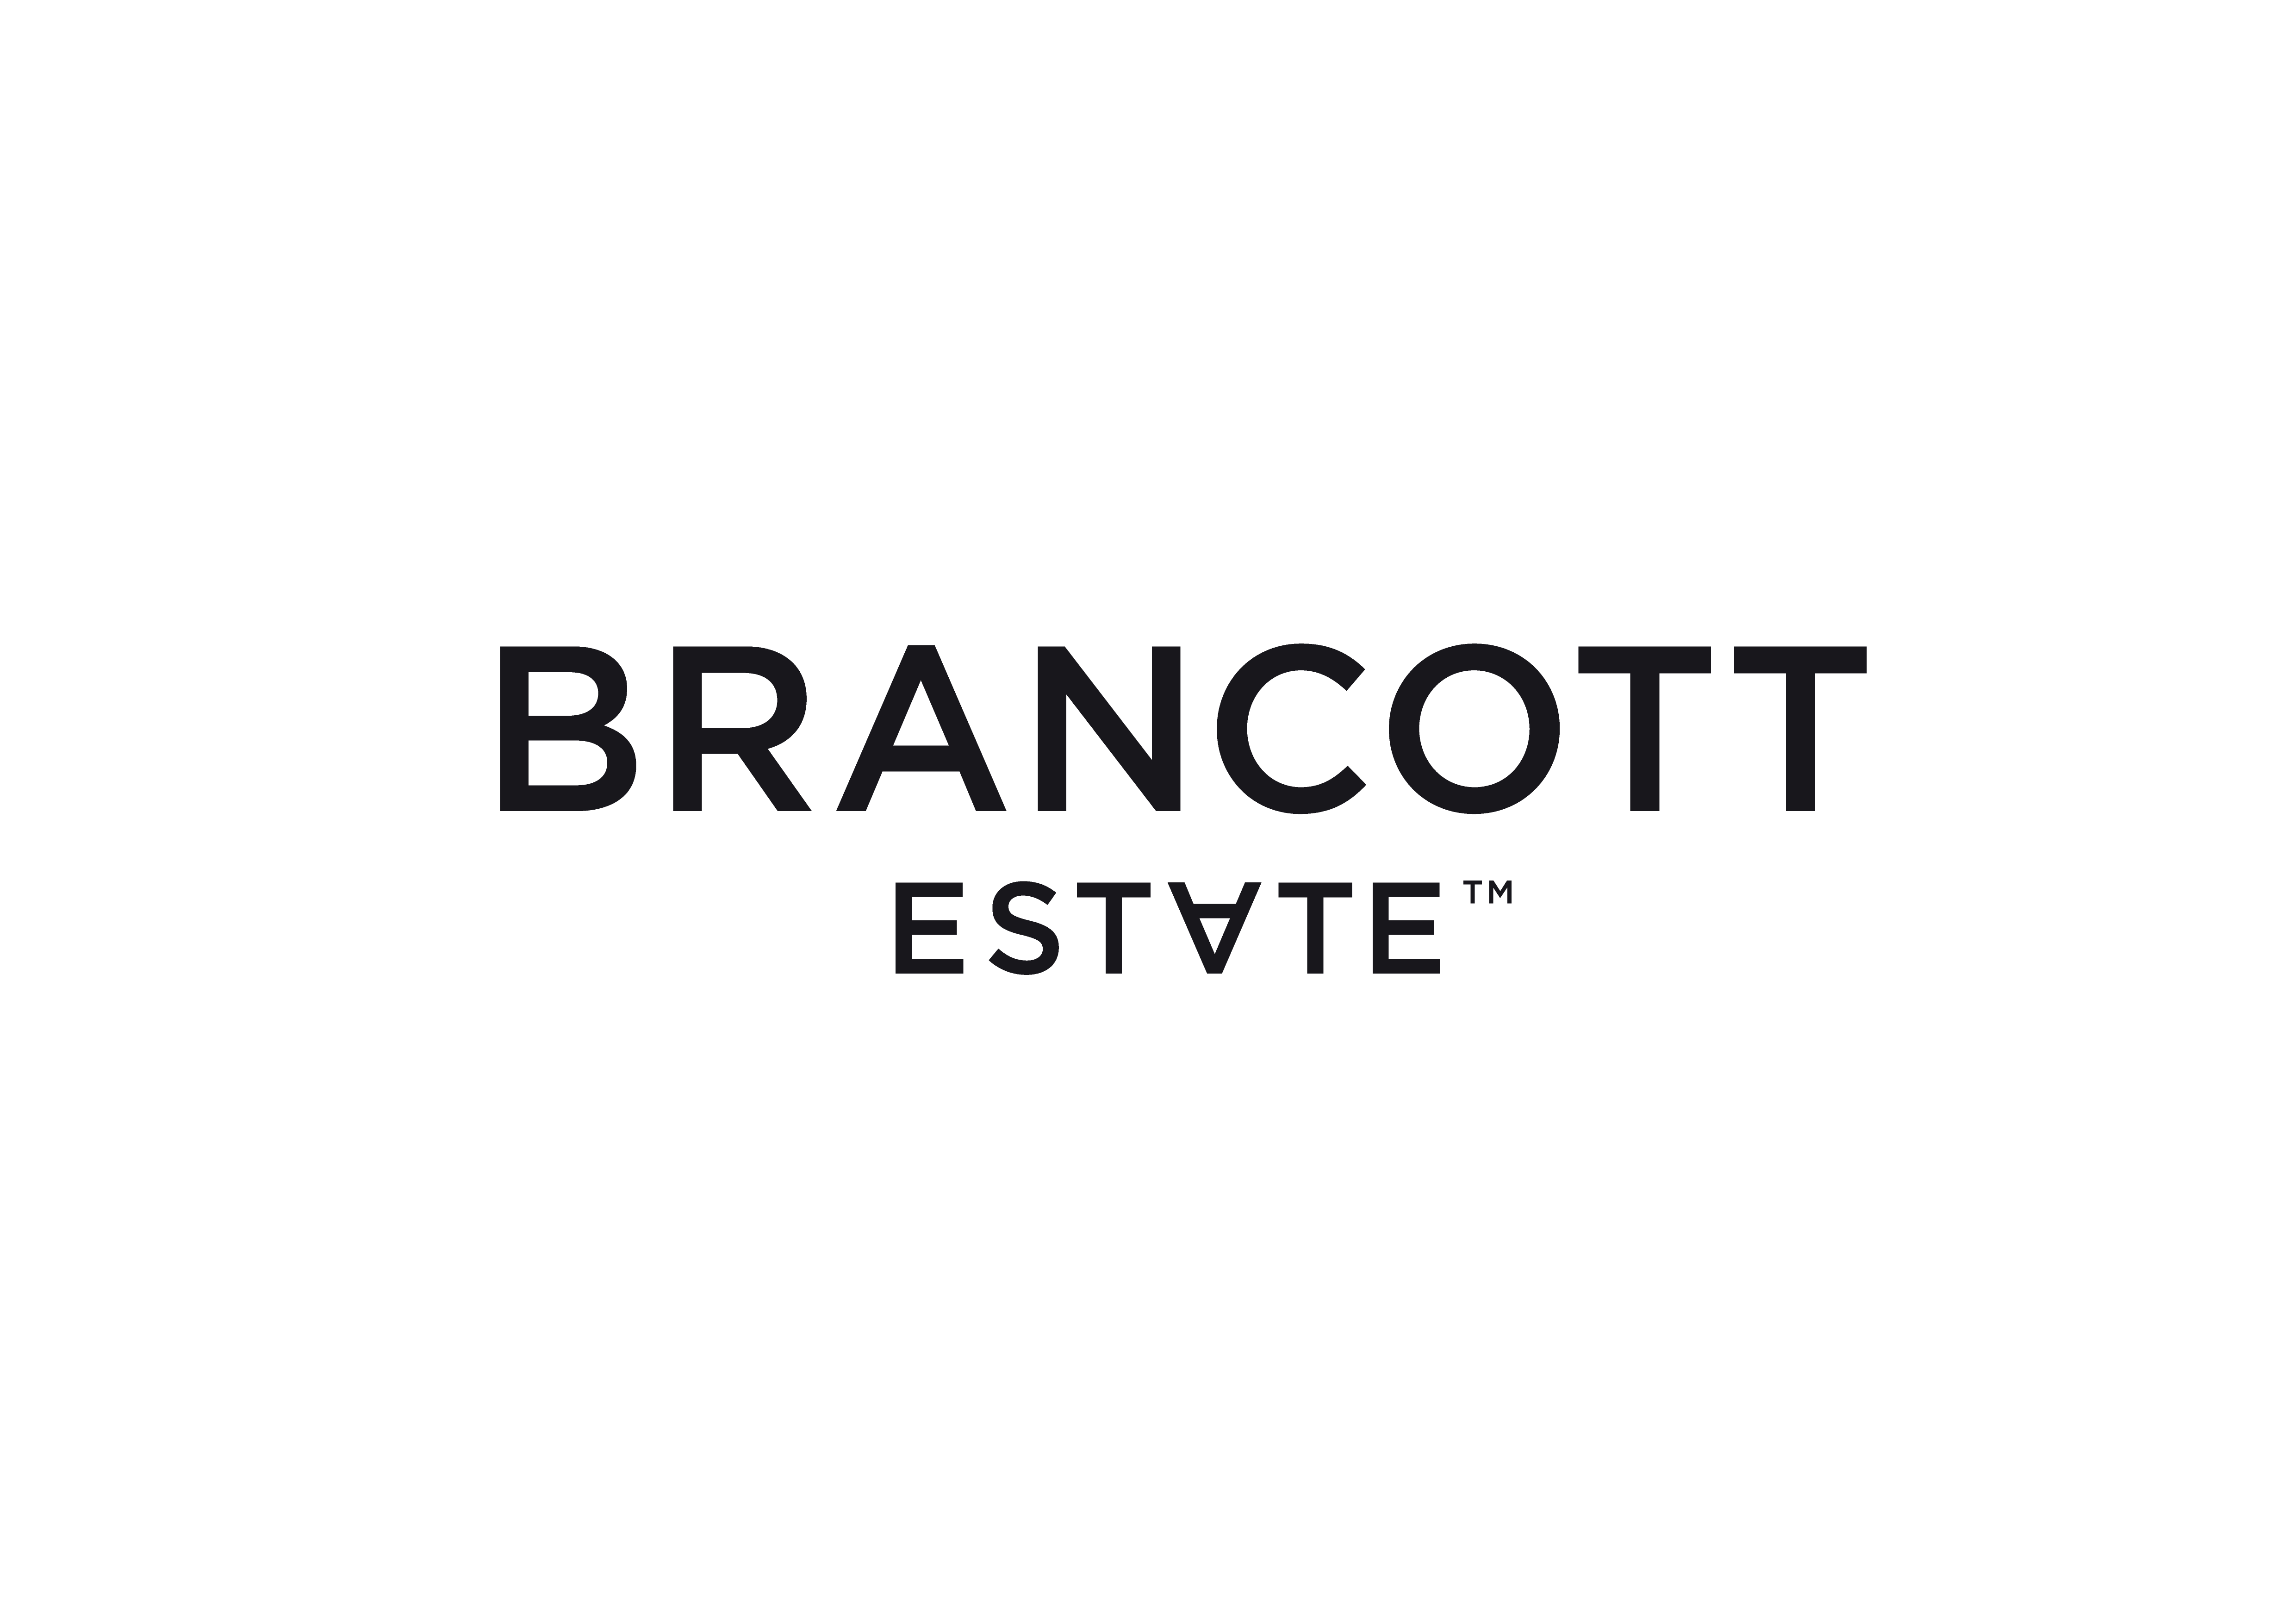 001036 Brancott Estate-Logo-black